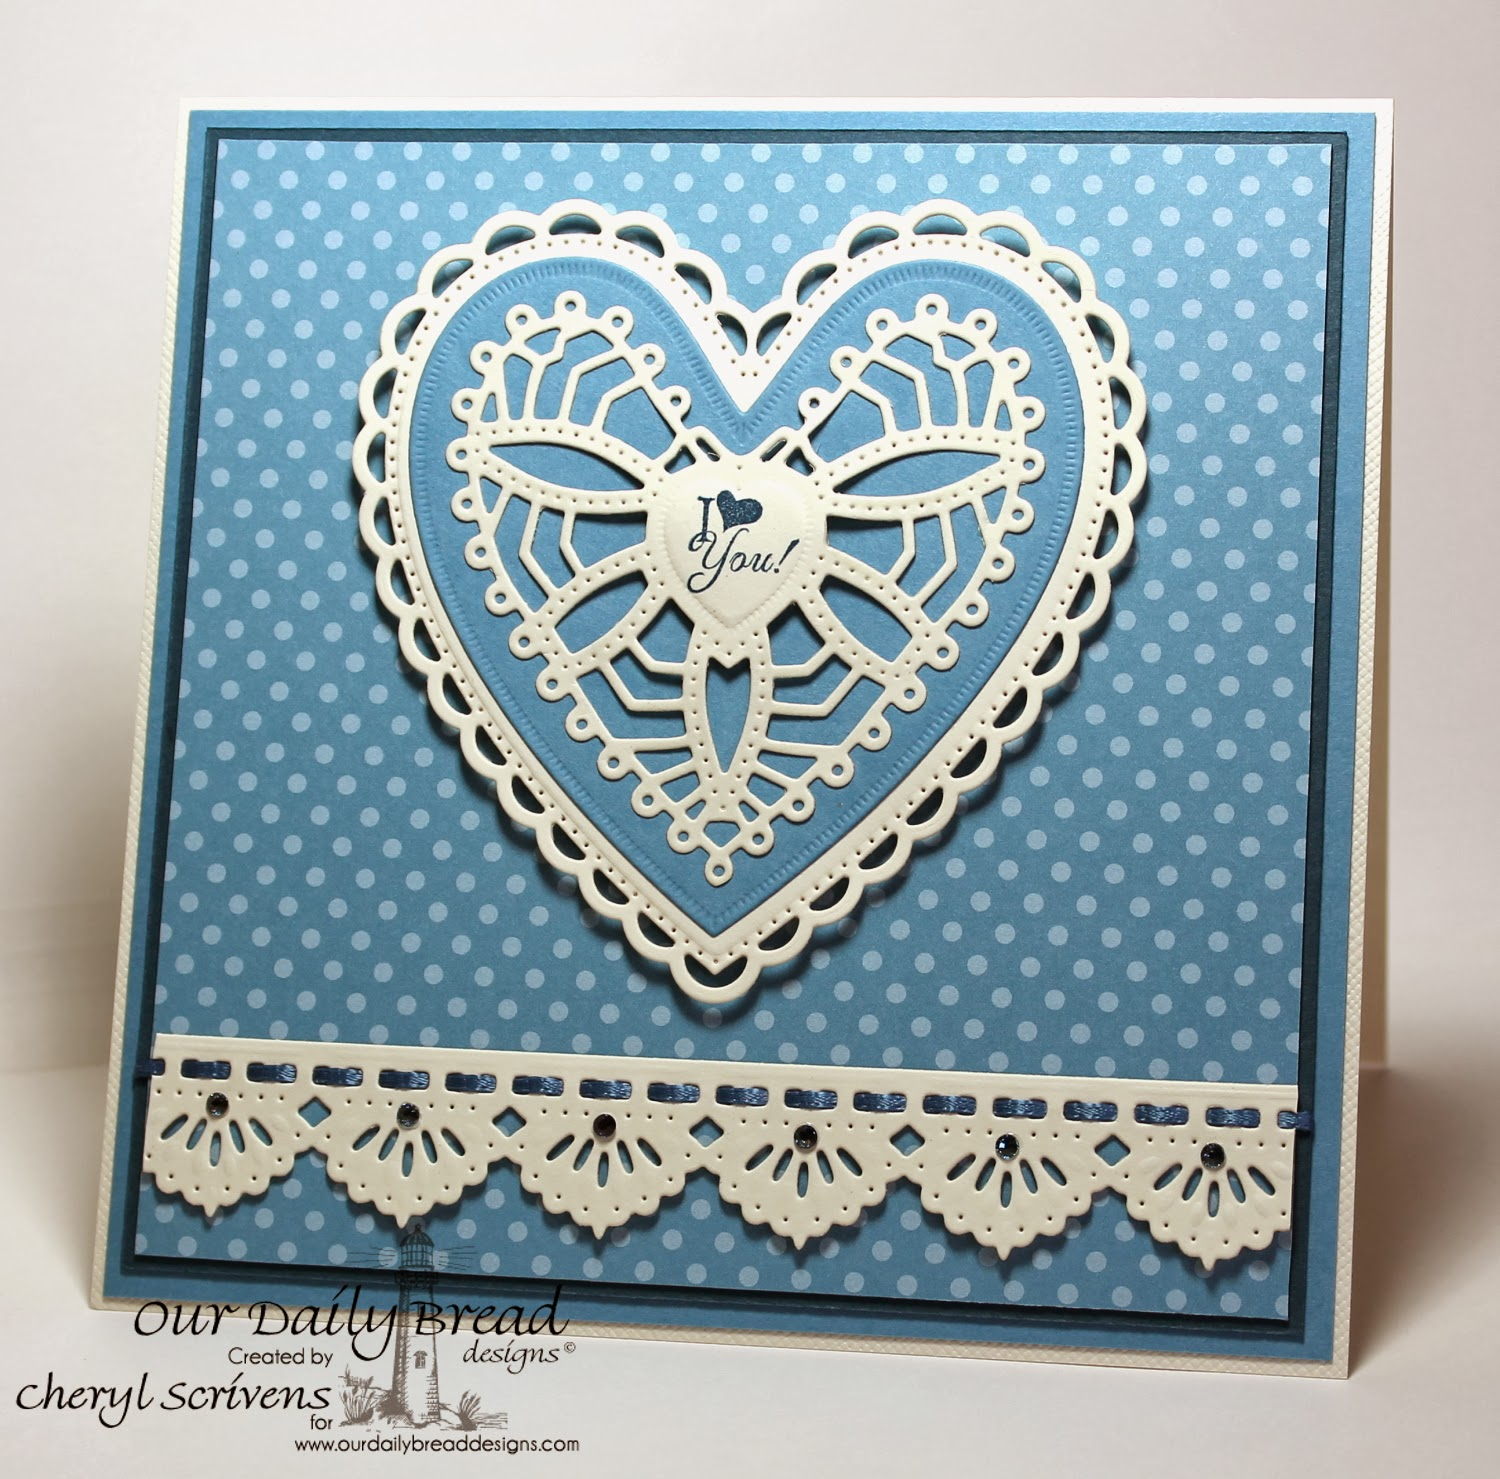 Our Daily Bread Designs, Be Mine, ODBD Custom Ornate Heart dies, ODBD Custom Beautiful Borders dies, CherylQuilts, Shining the Light Challenge, Designed by Cheryl Scrivens